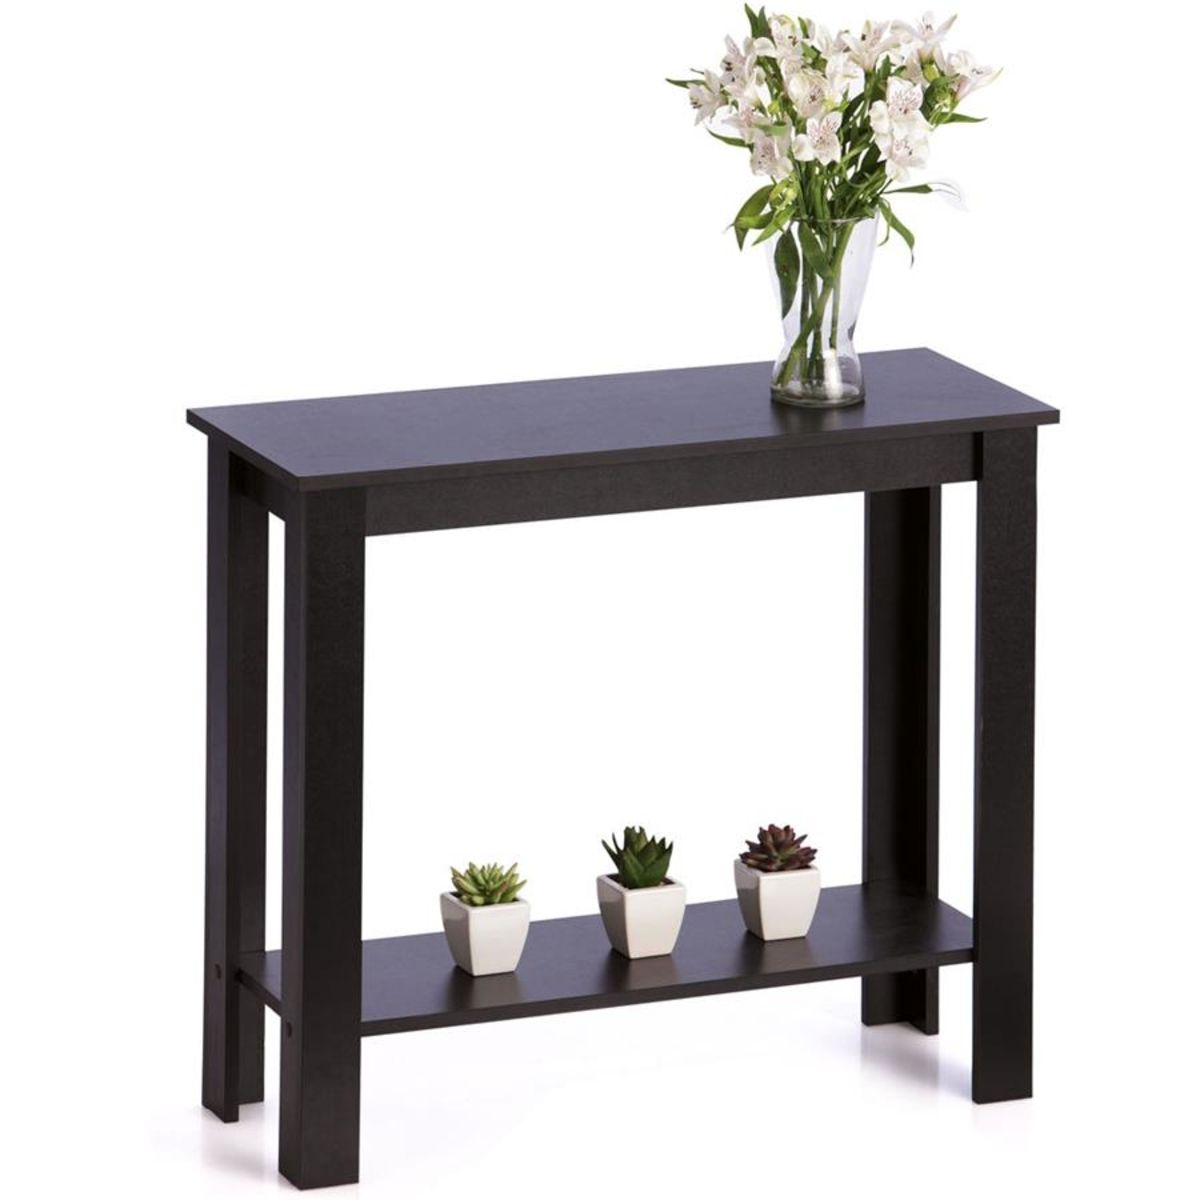 black hallway table | kmart … | pinteres…